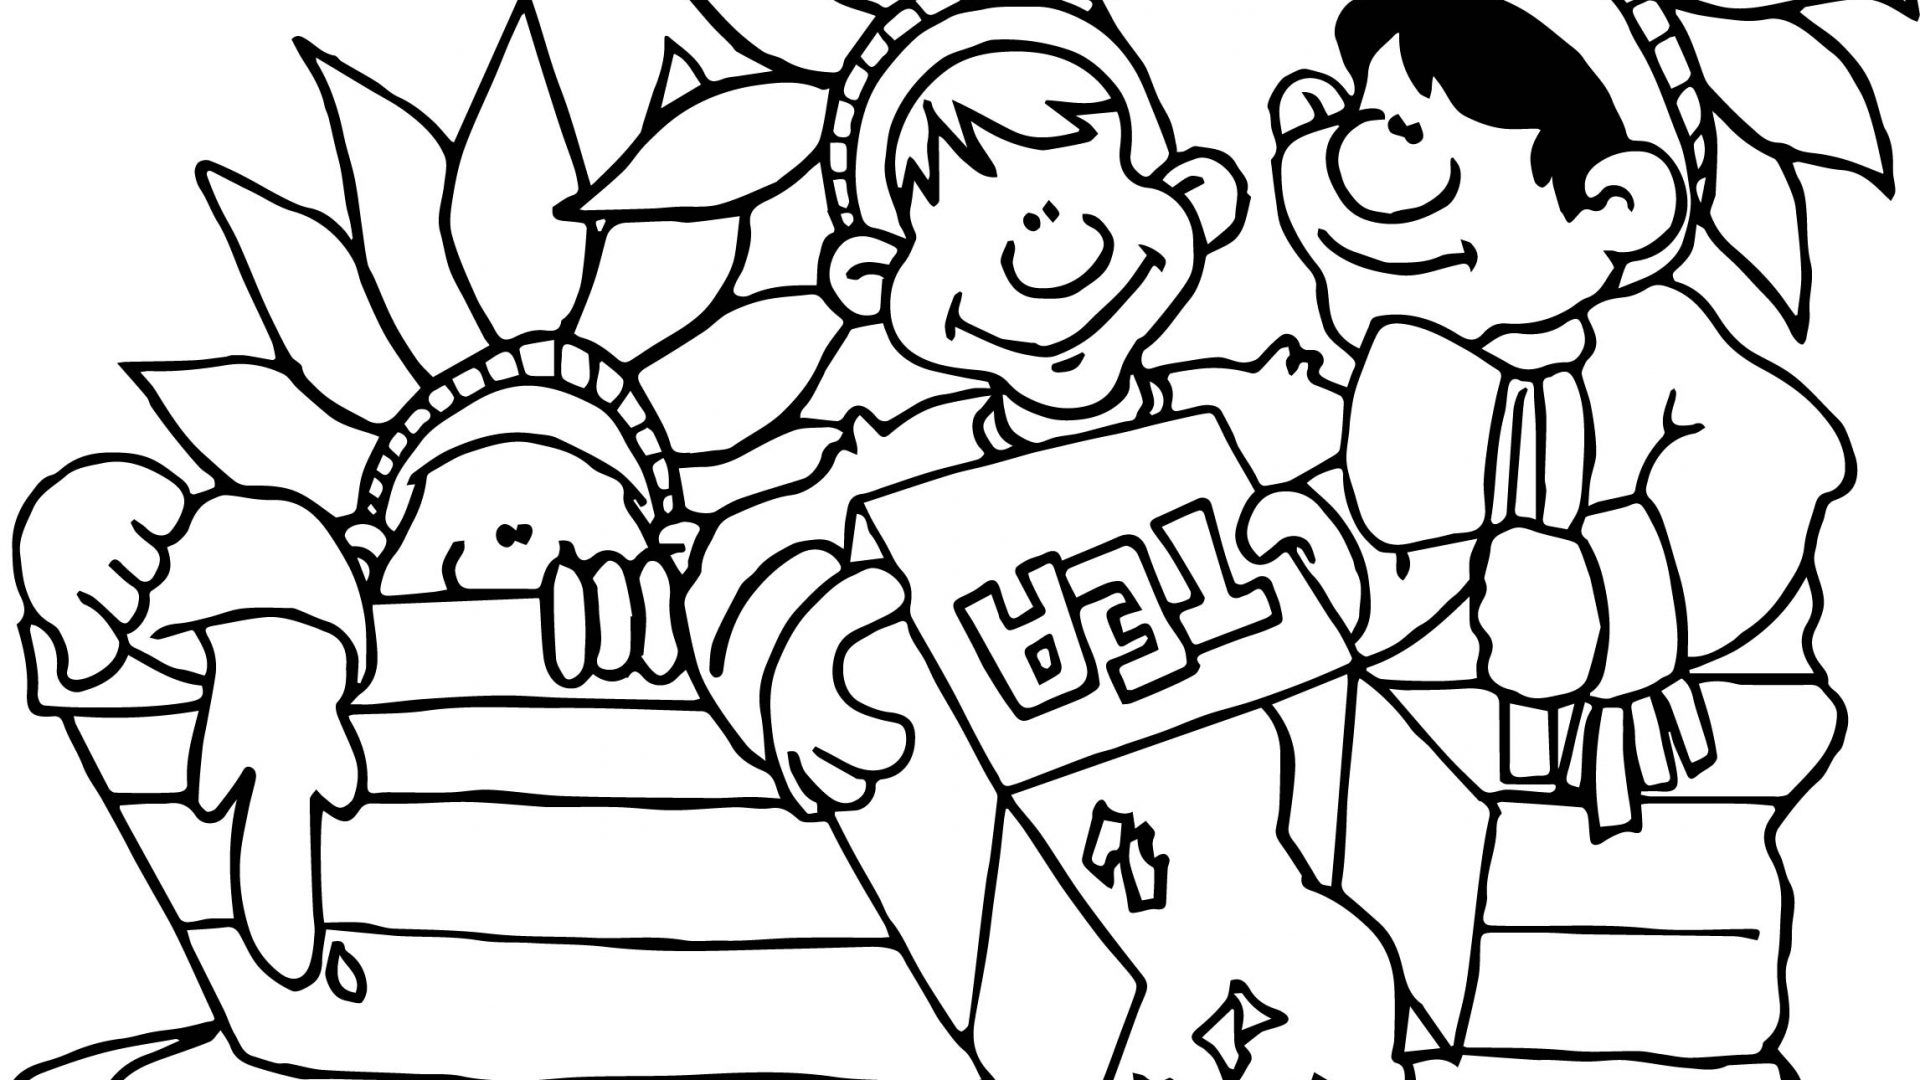 Boston Tea Party Coloring Page At Pages Rallytv Org And Boston